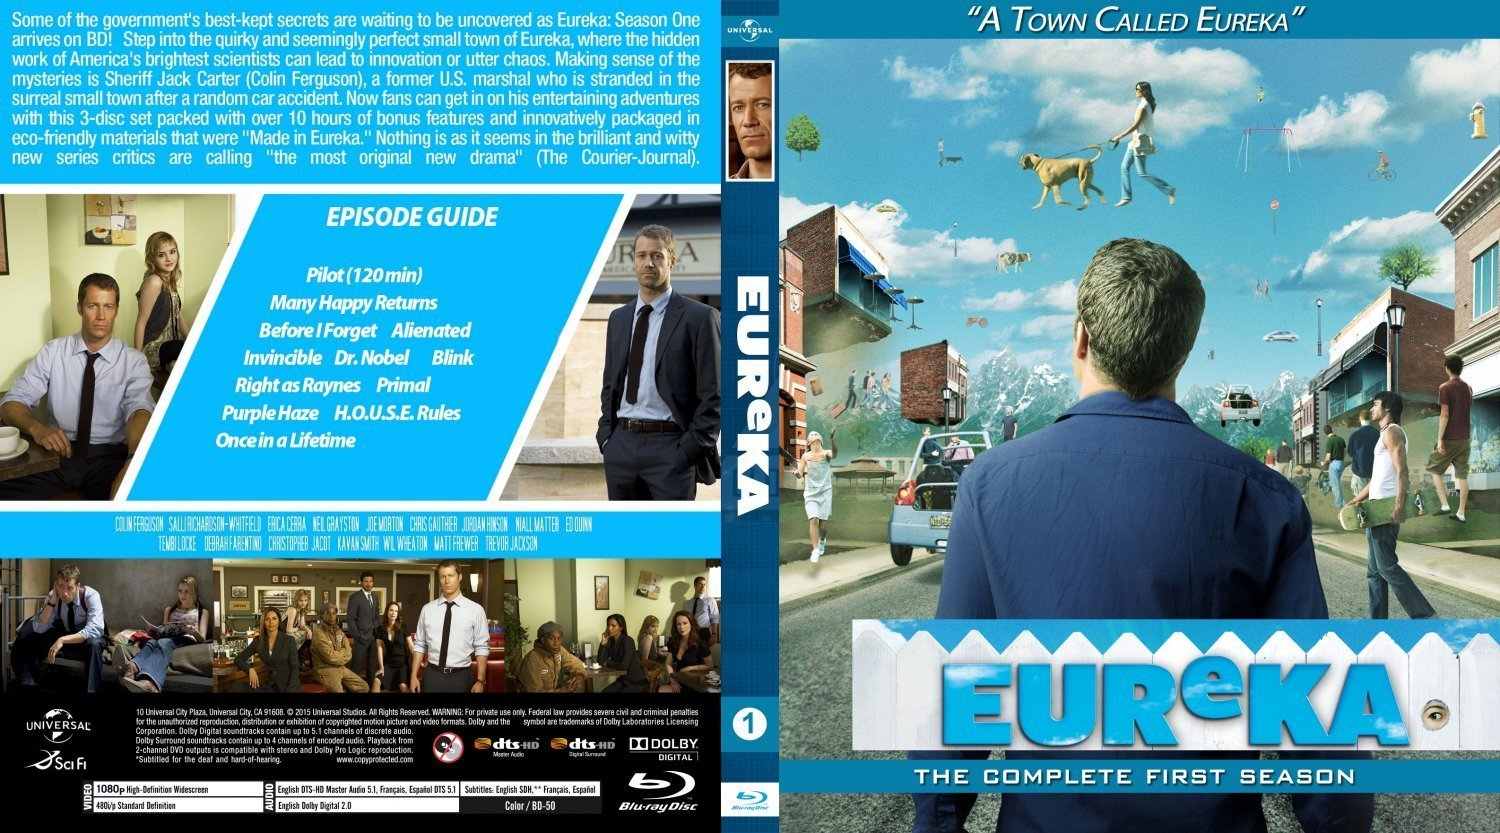 Eureka Season1 BD v1 | Dvd Covers and Labels